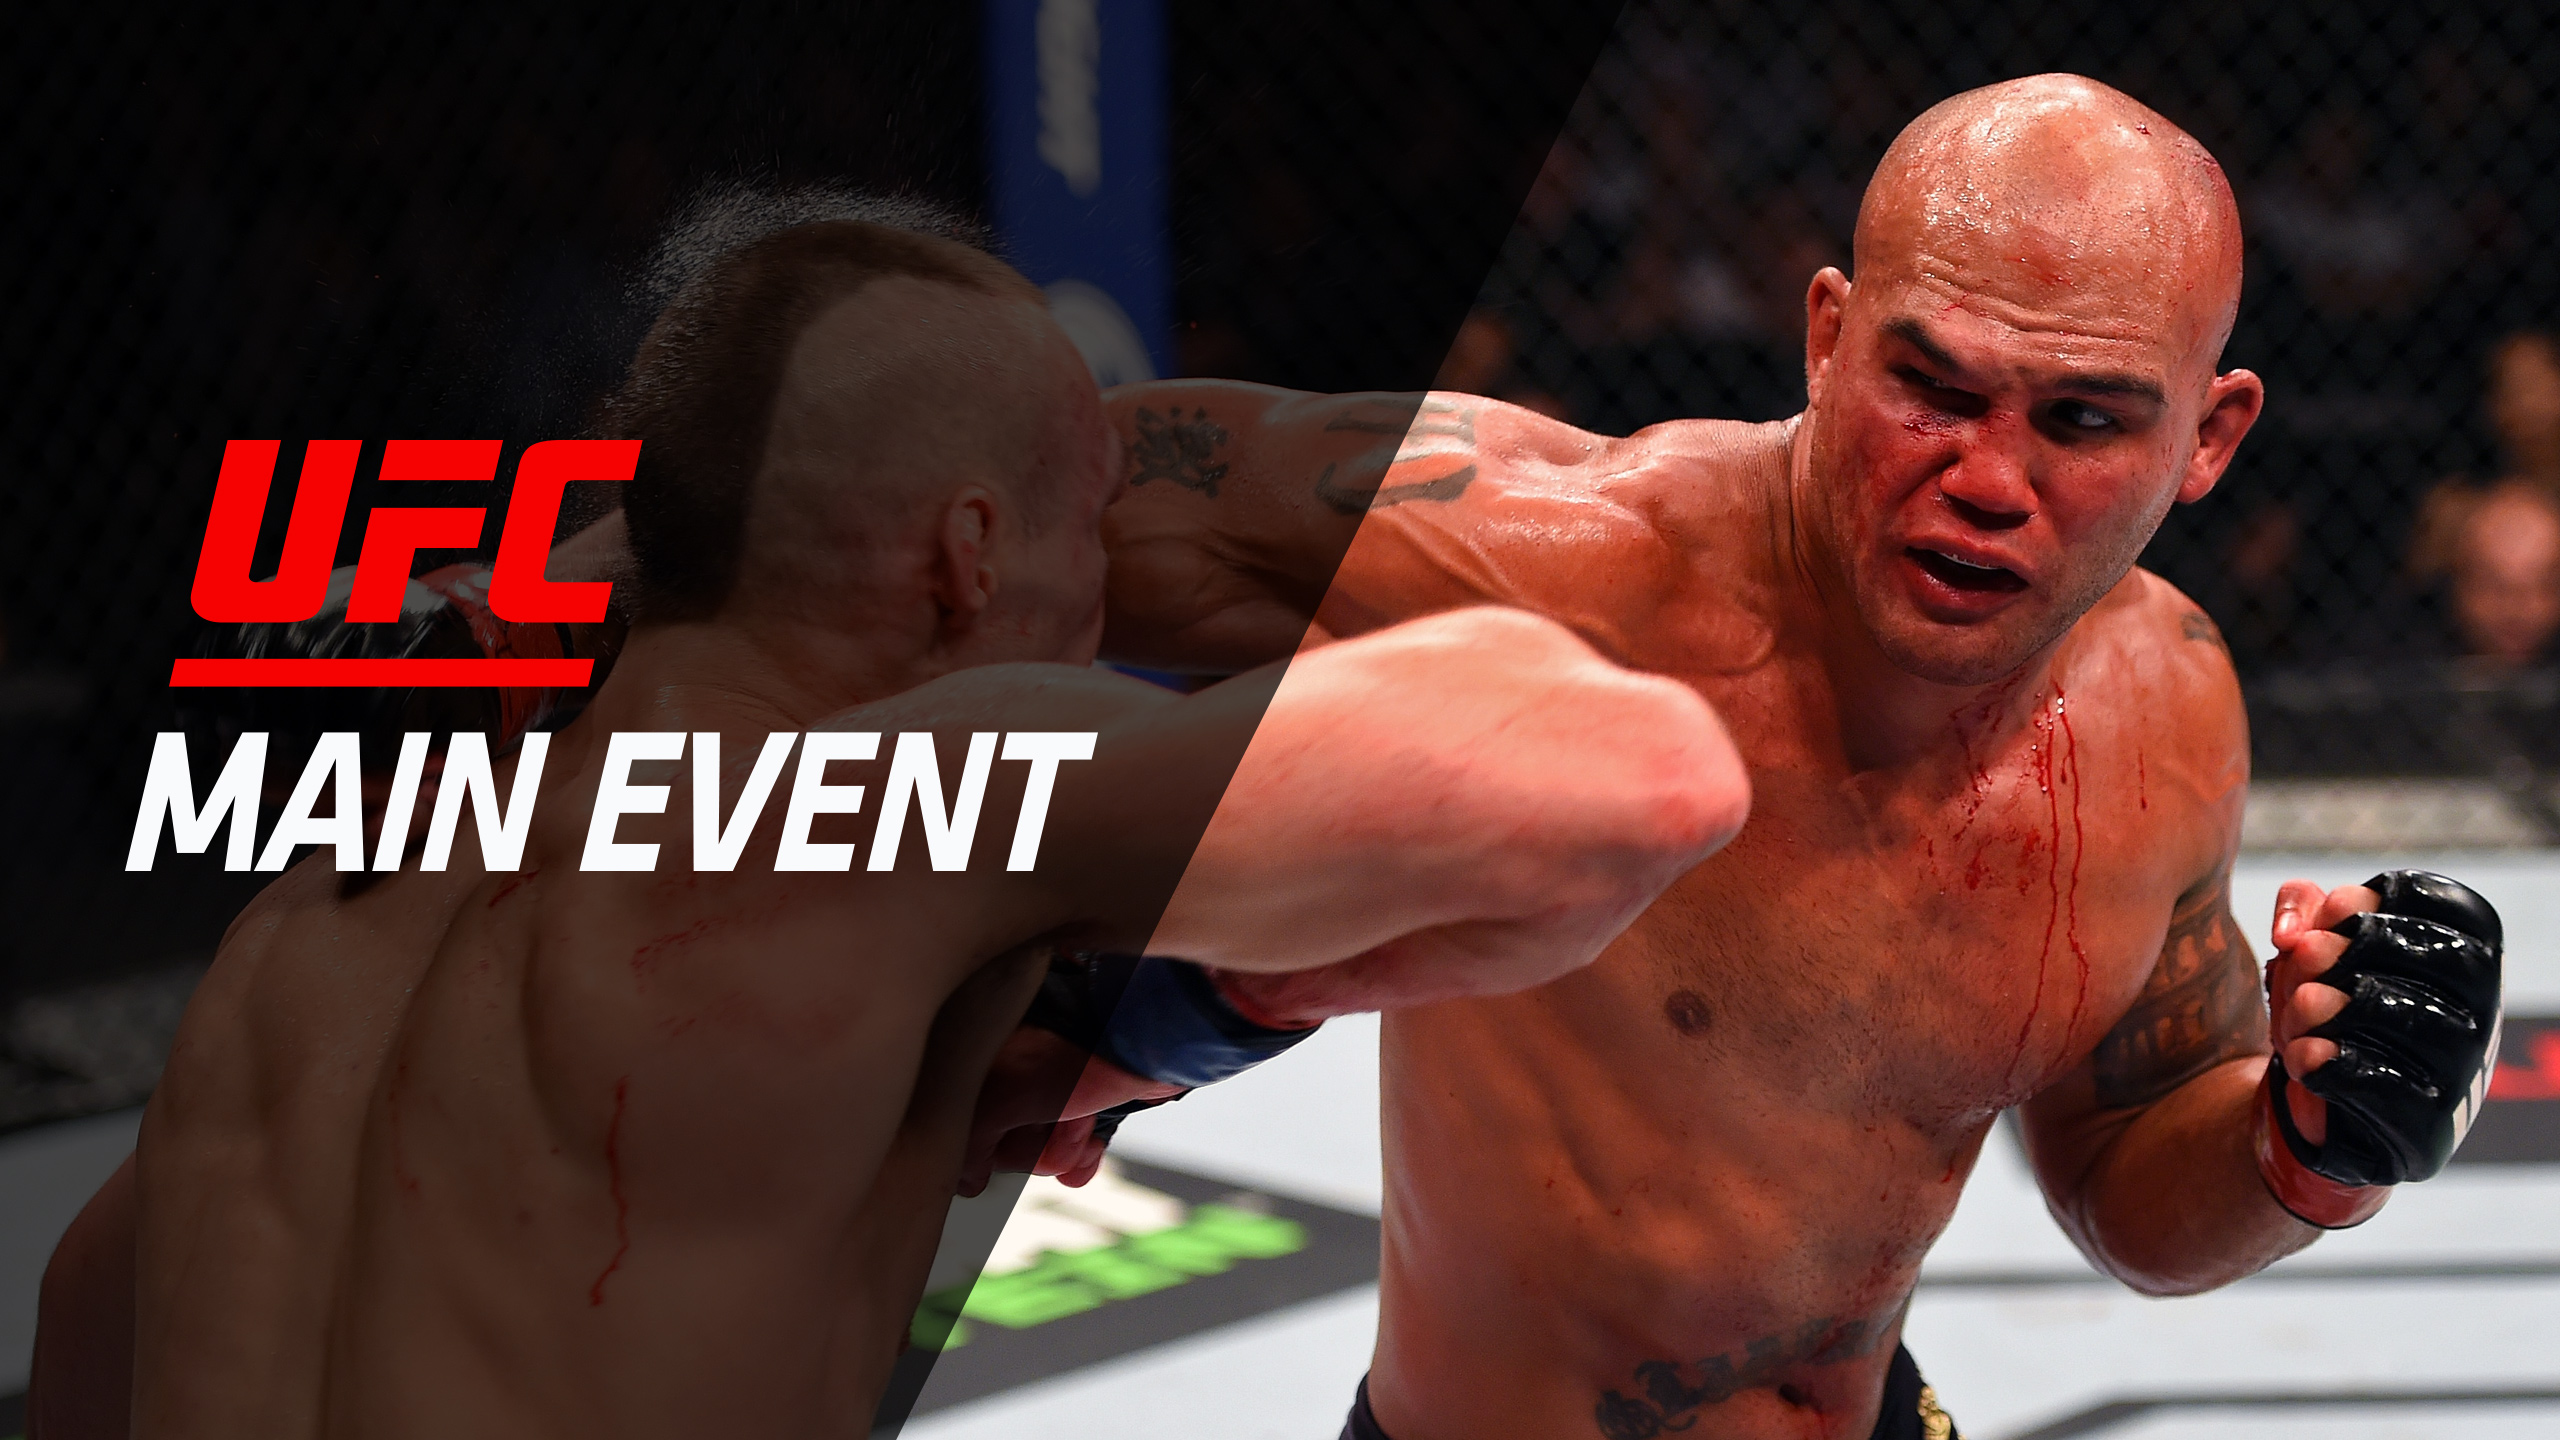 UFC Main Event: MacDonald vs. Lawler